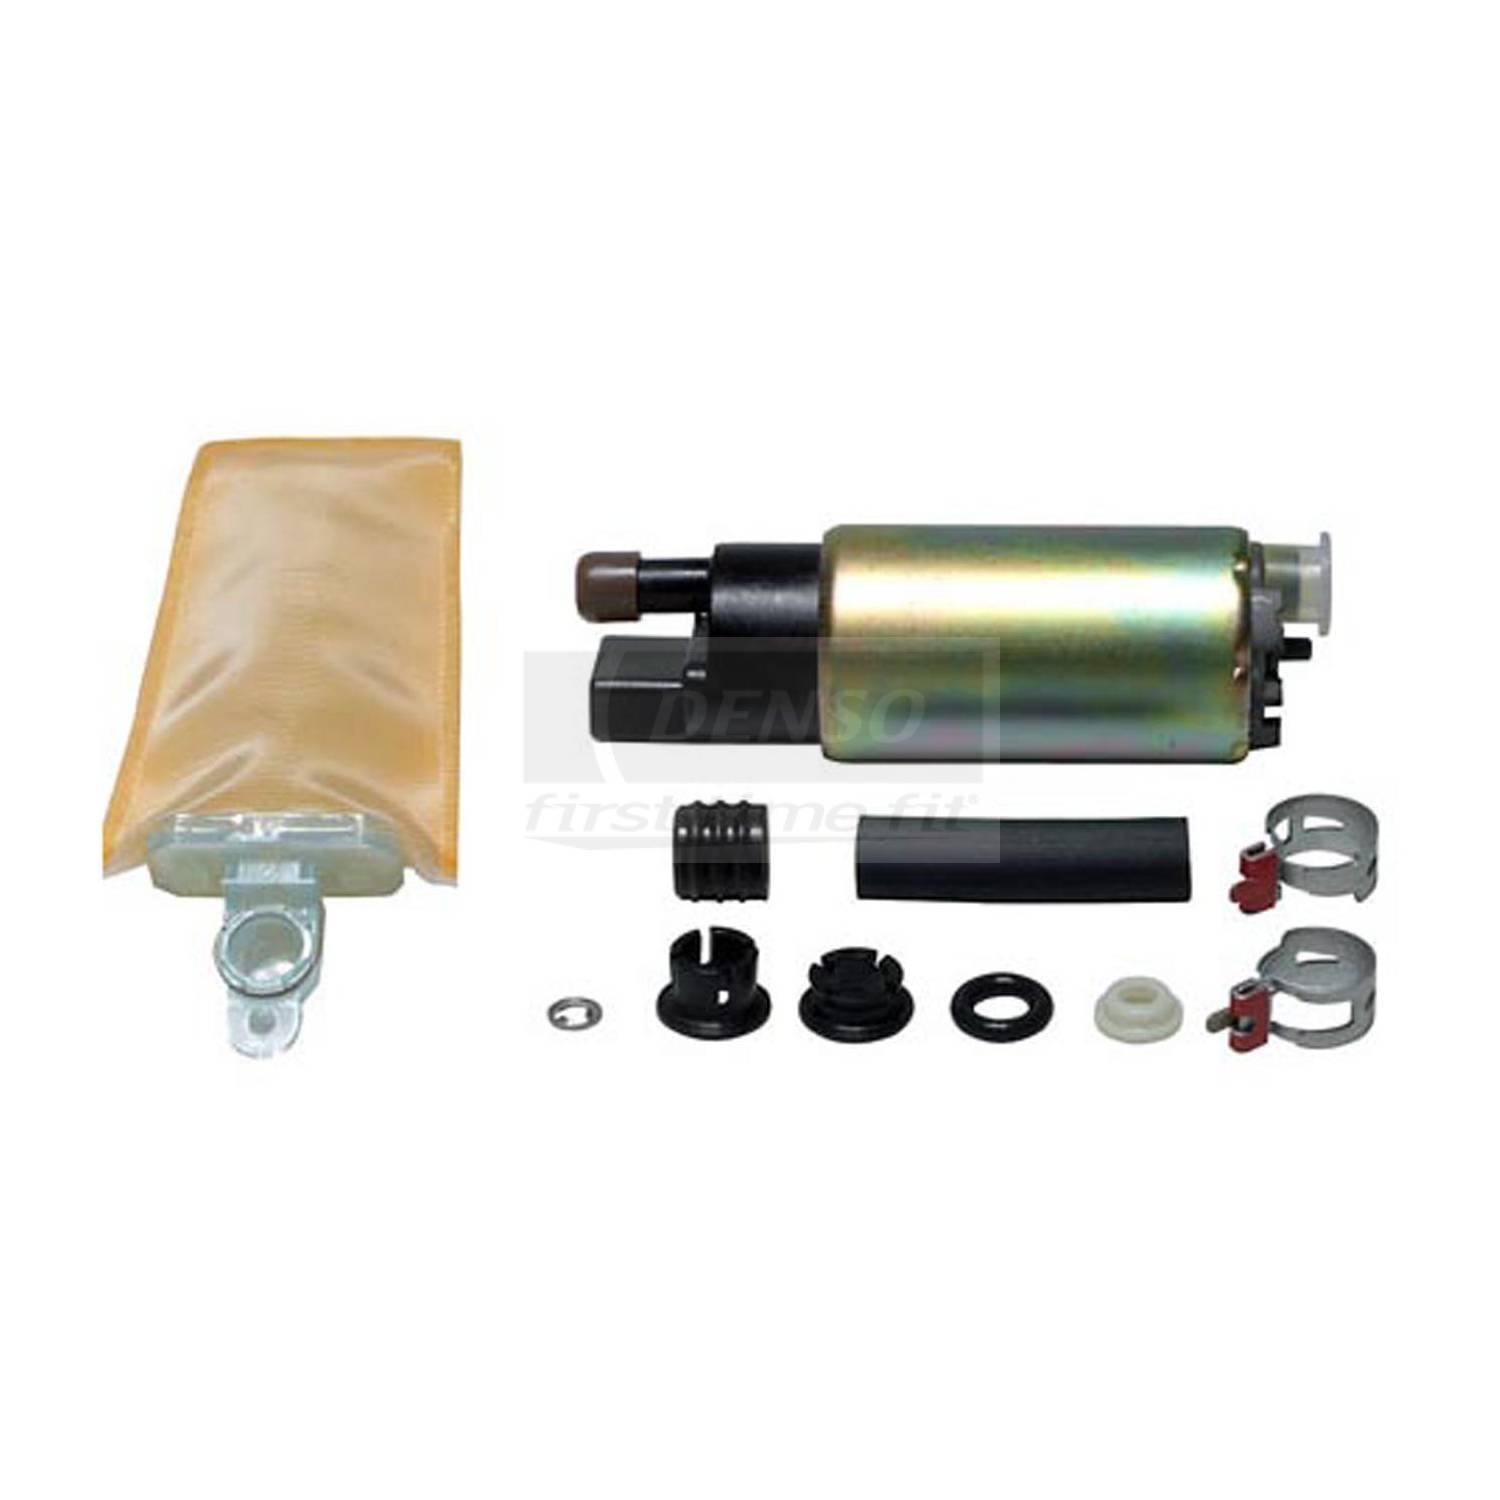 DENSO - Fuel Pump and Strainer Set - NDE 950-0100